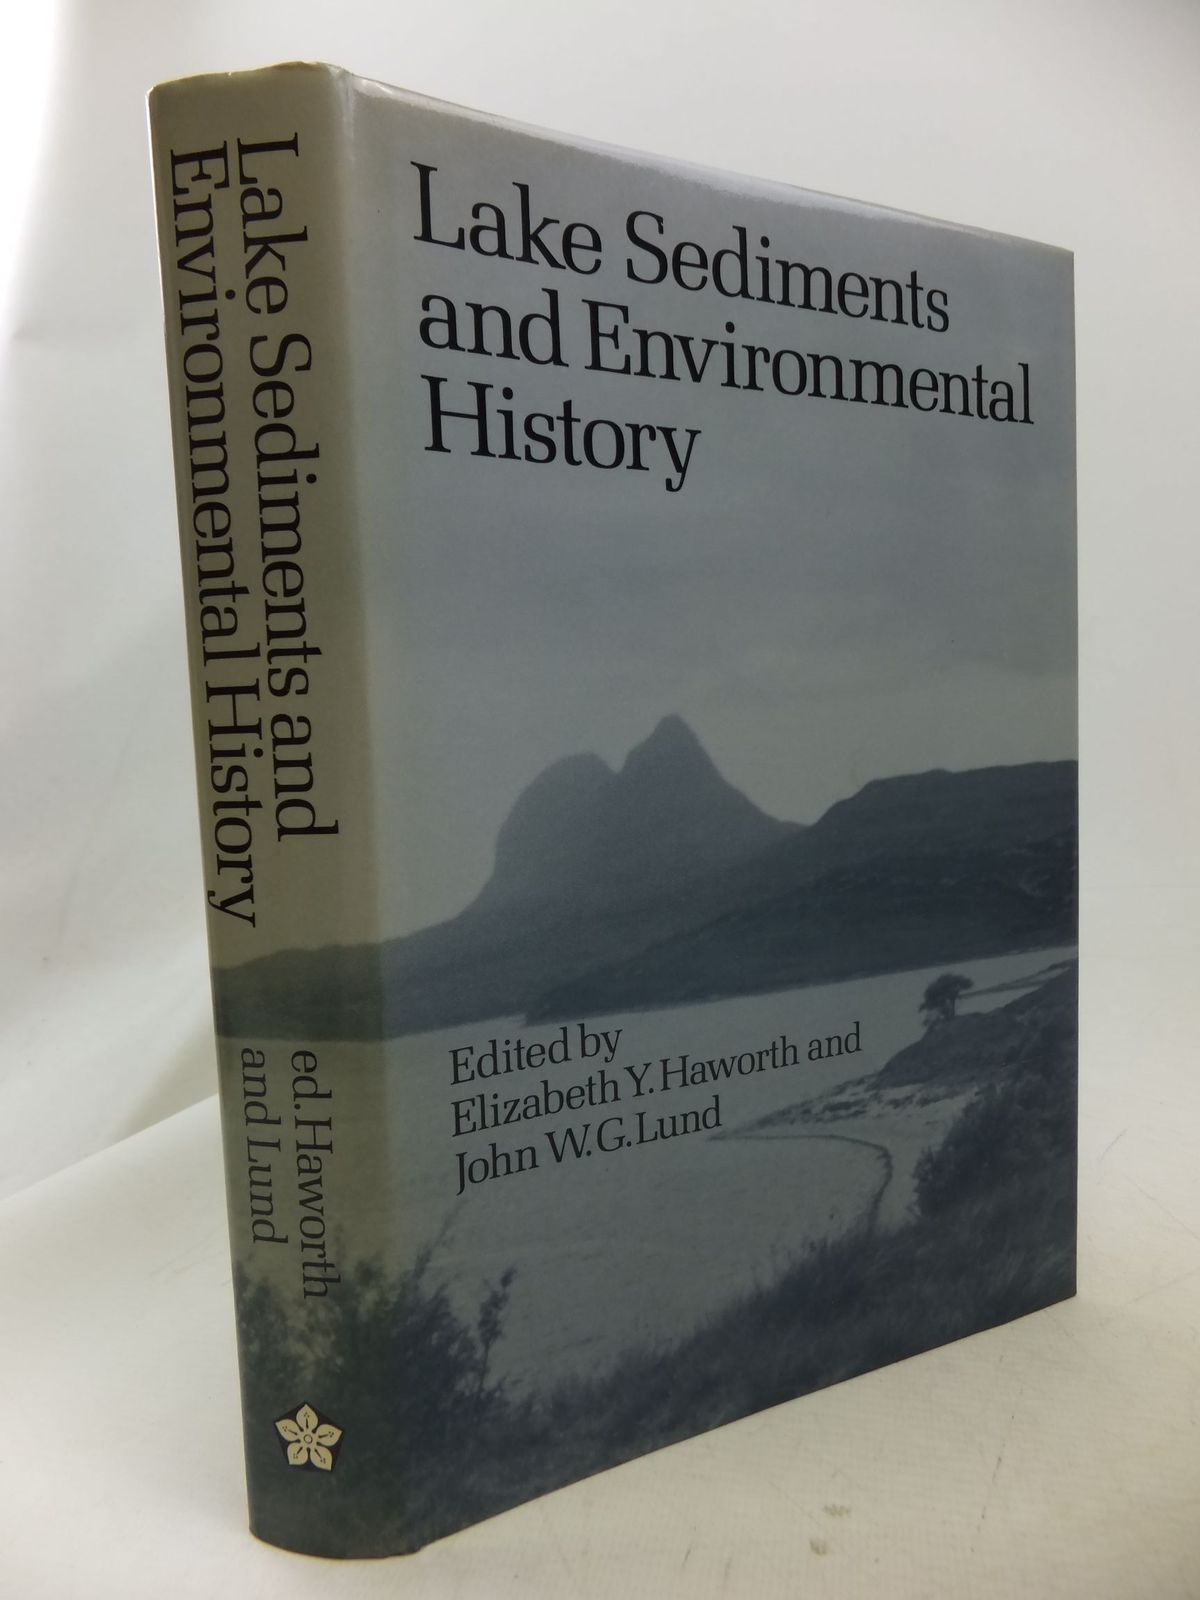 Photo of LAKE SEDIMENTS AND ENVIRONMENTAL HISTORY written by Haworth, Elizabeth Y.<br />Lund, John W.G. published by Leicester University Press (STOCK CODE: 1710866)  for sale by Stella & Rose's Books